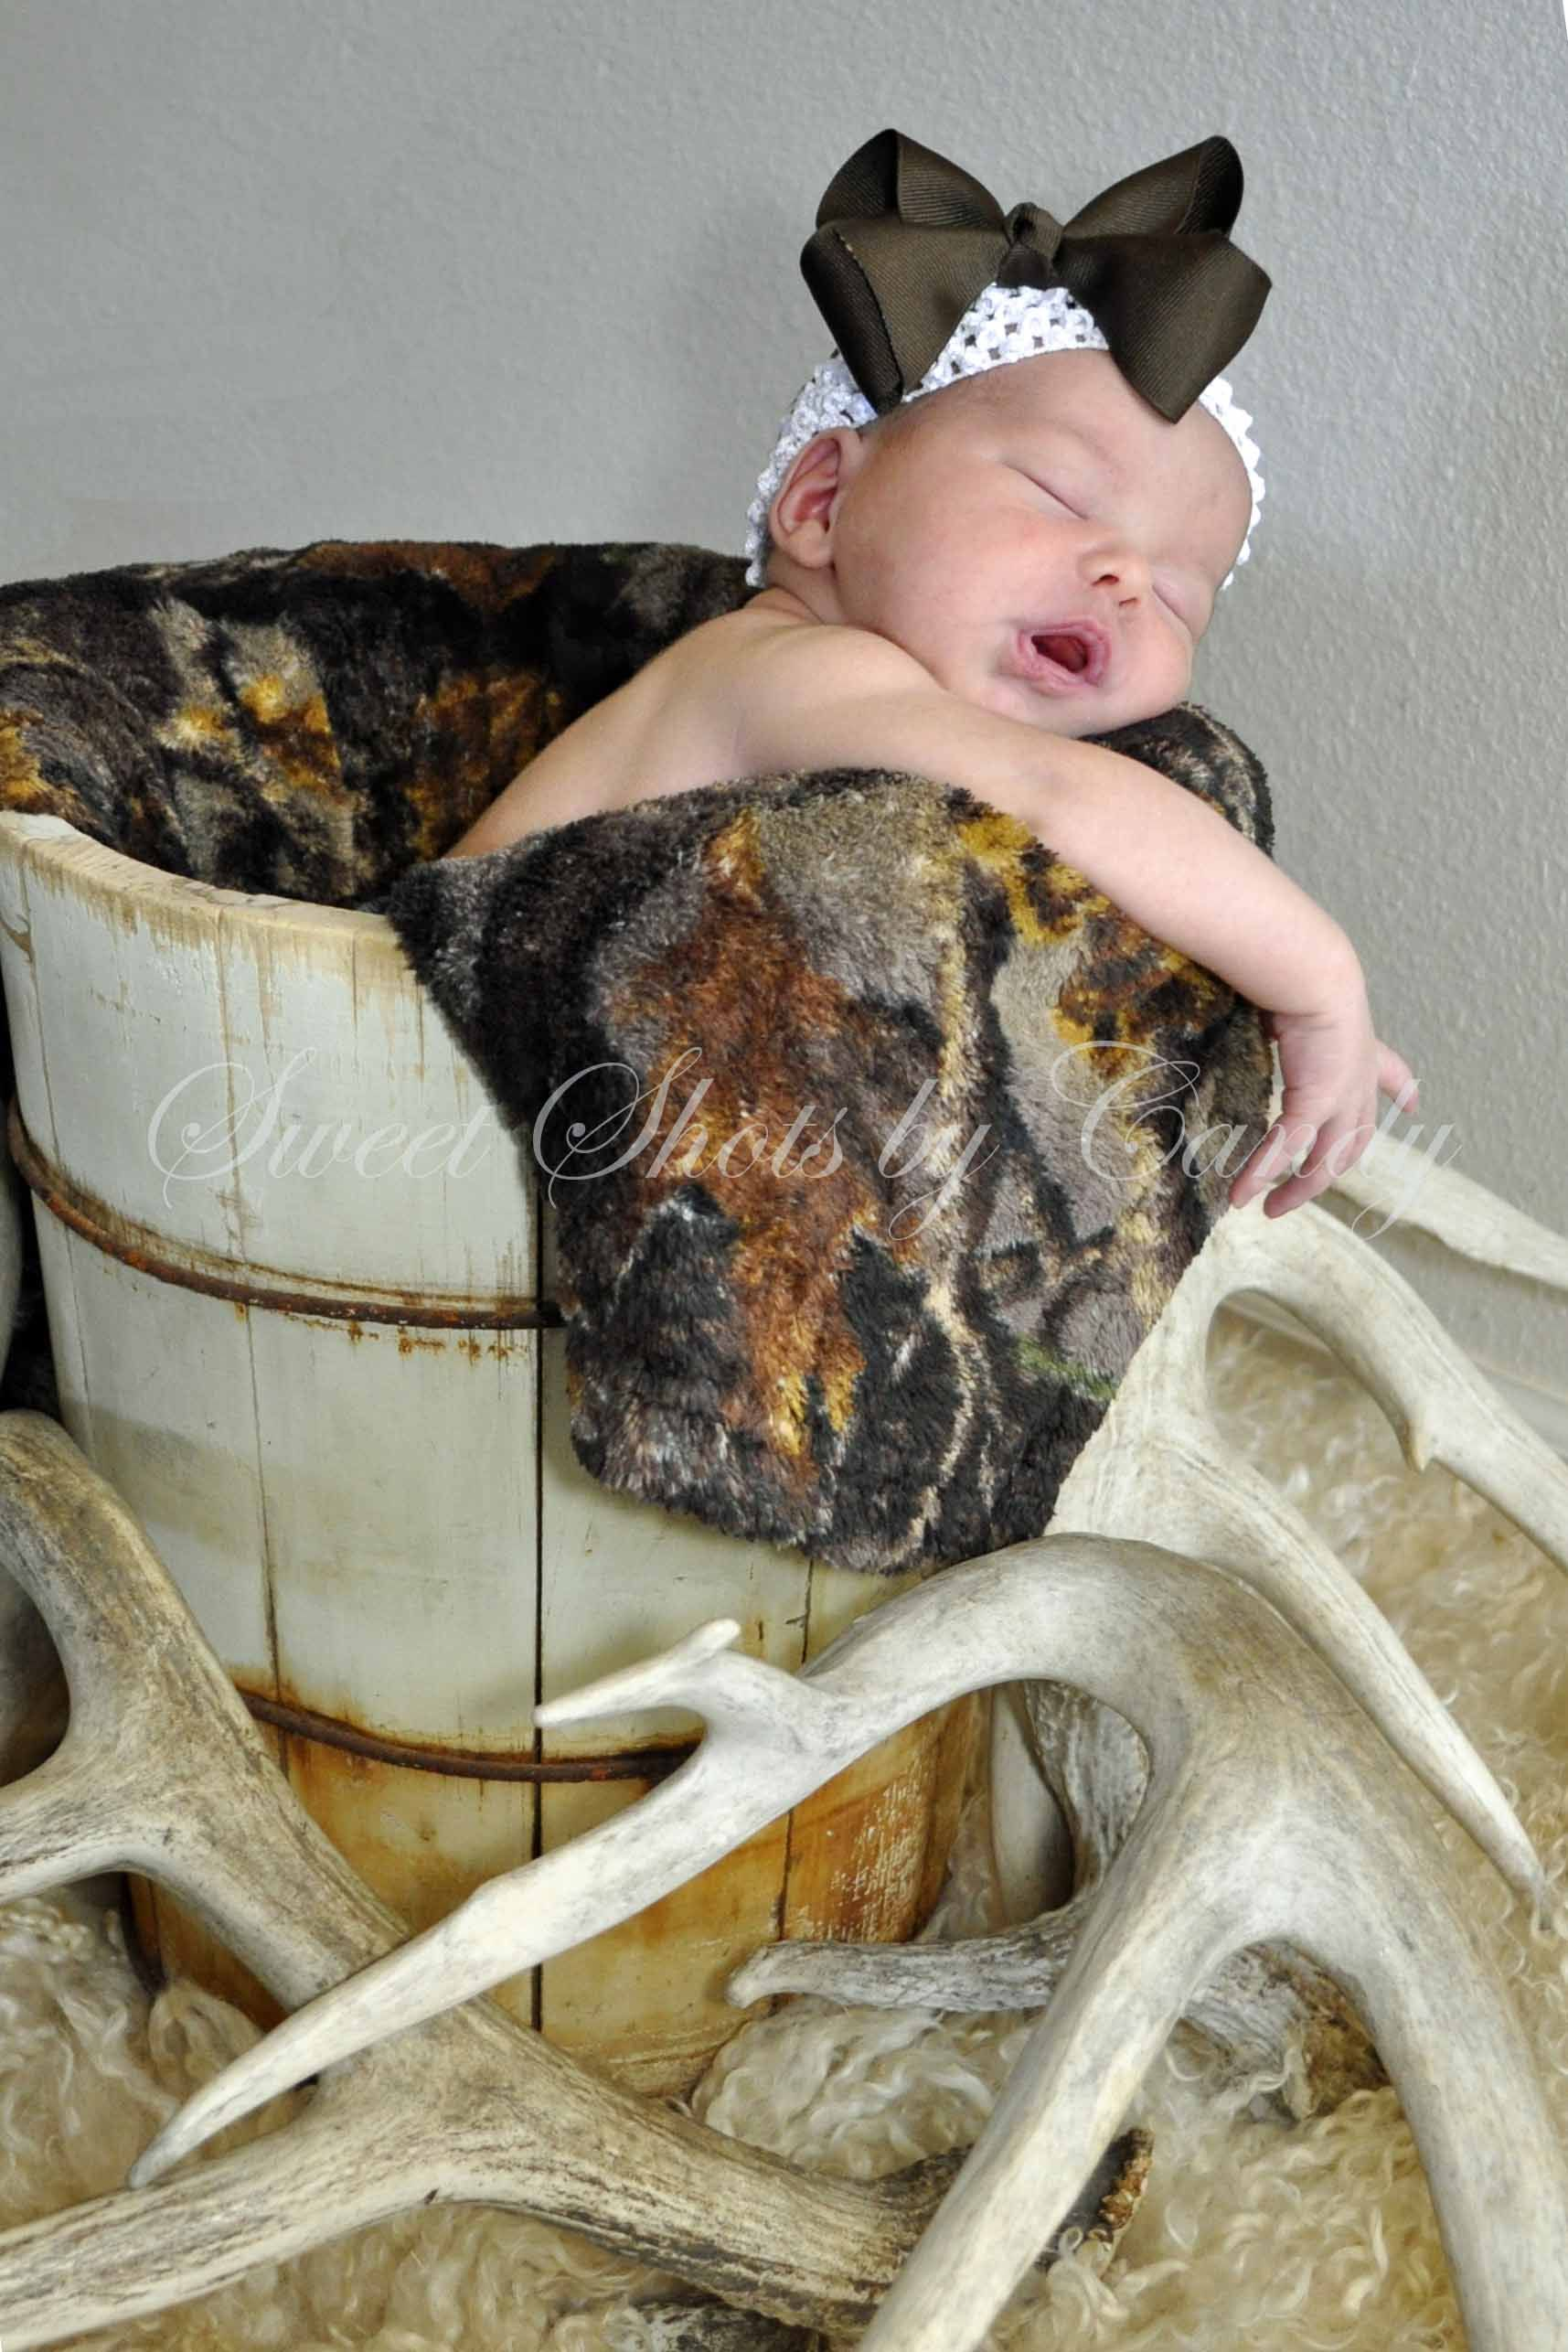 Country Baby Camo Baby Stuff Cute Baby Pictures Baby